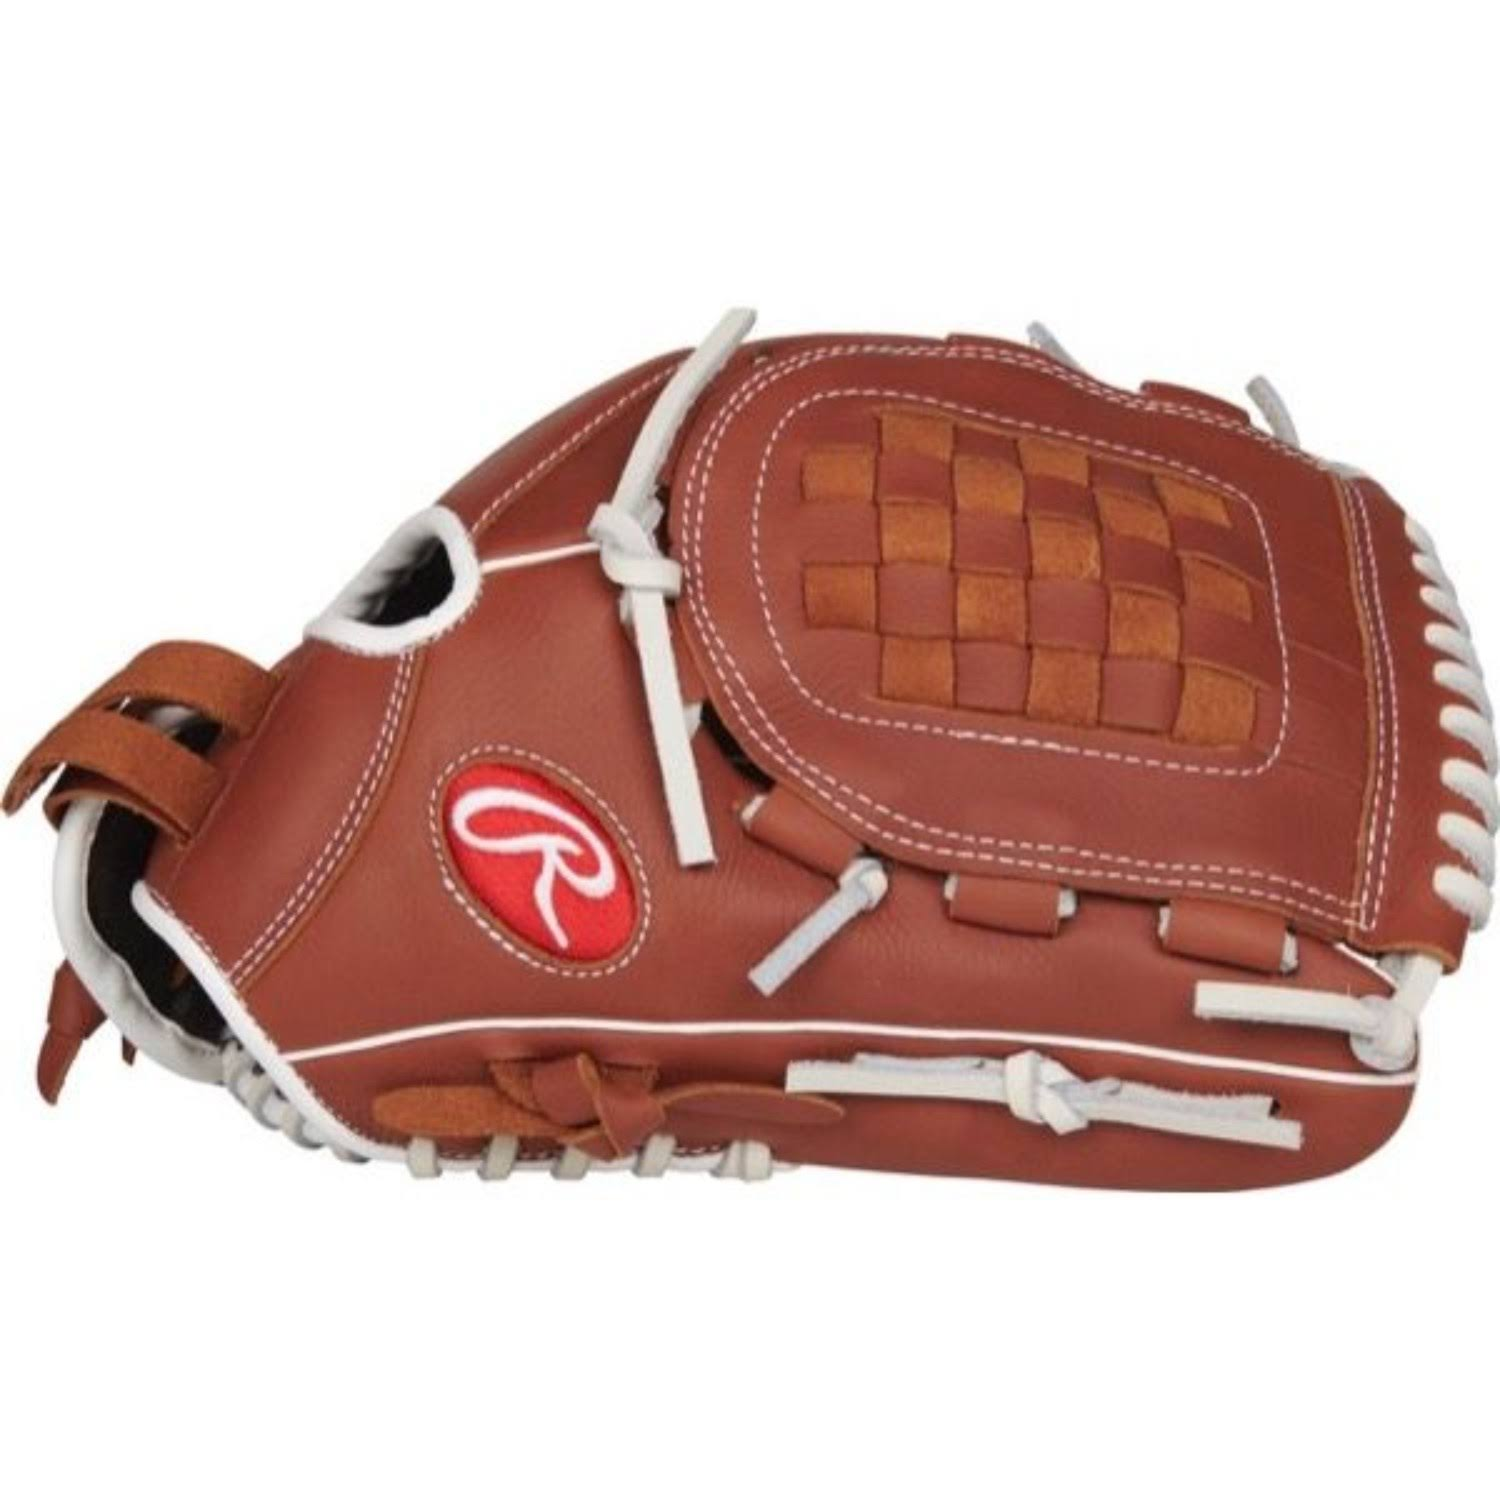 "Rawlings R9 Series 12"" Fastpitch Softball Glove"